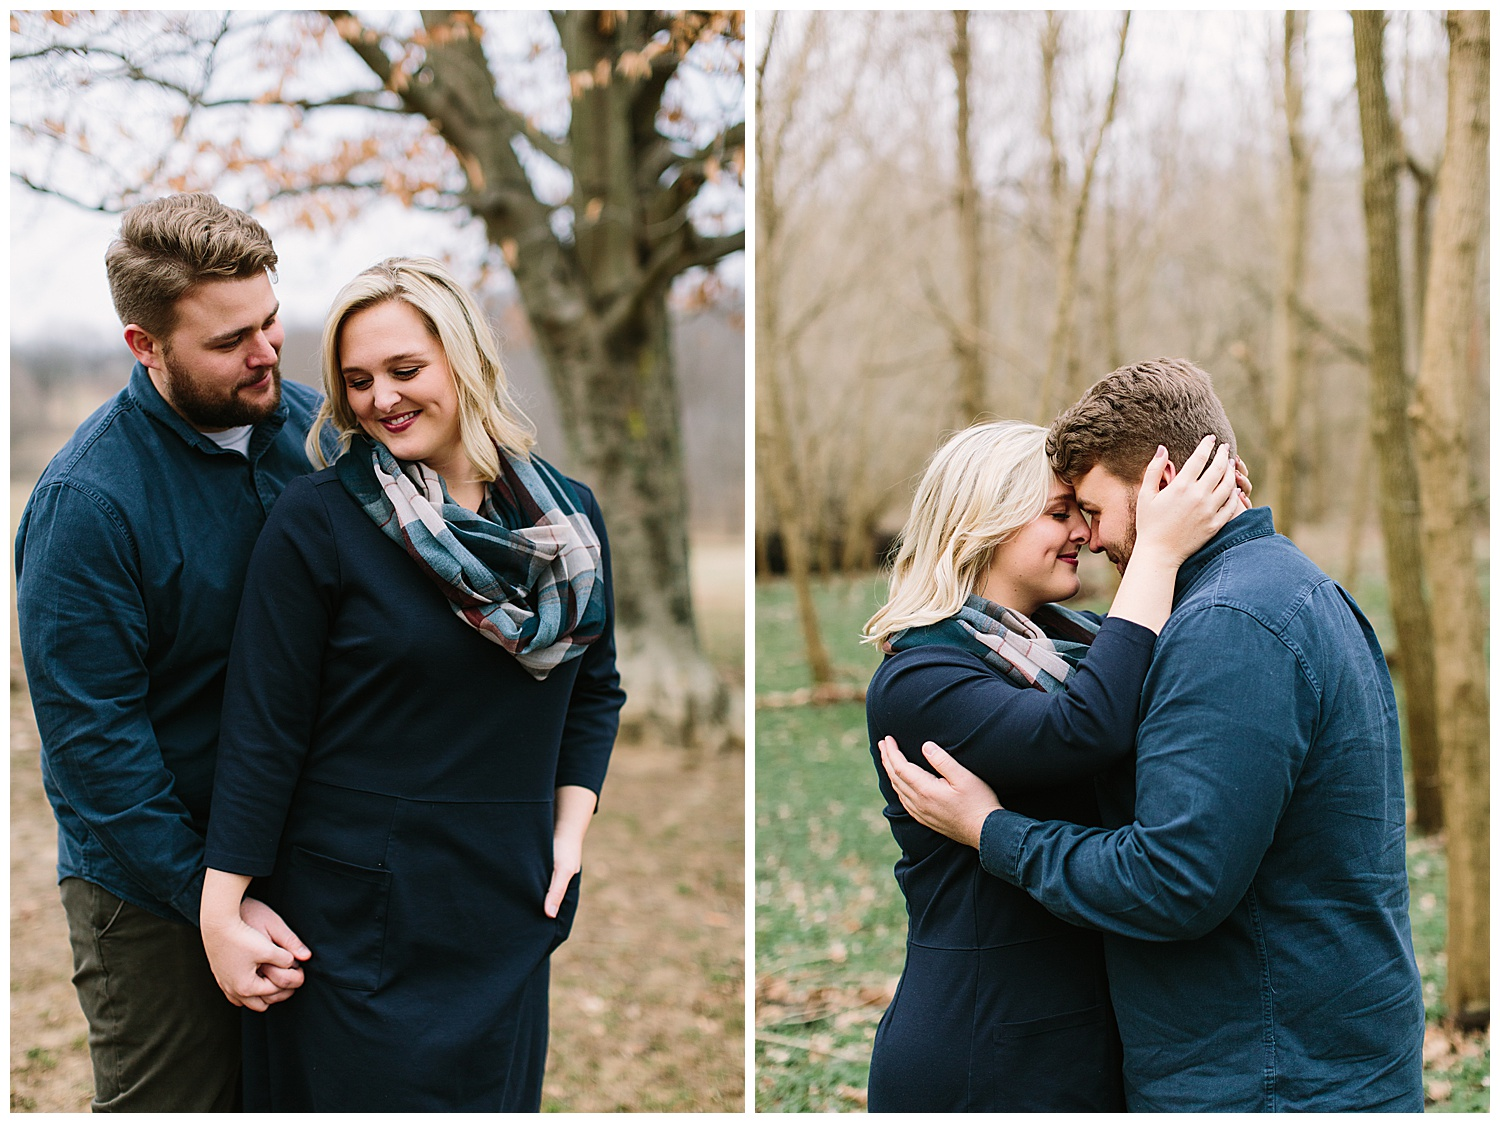 trent.and.kendra.photography.louisville.germantown.engagement.session-15.jpg